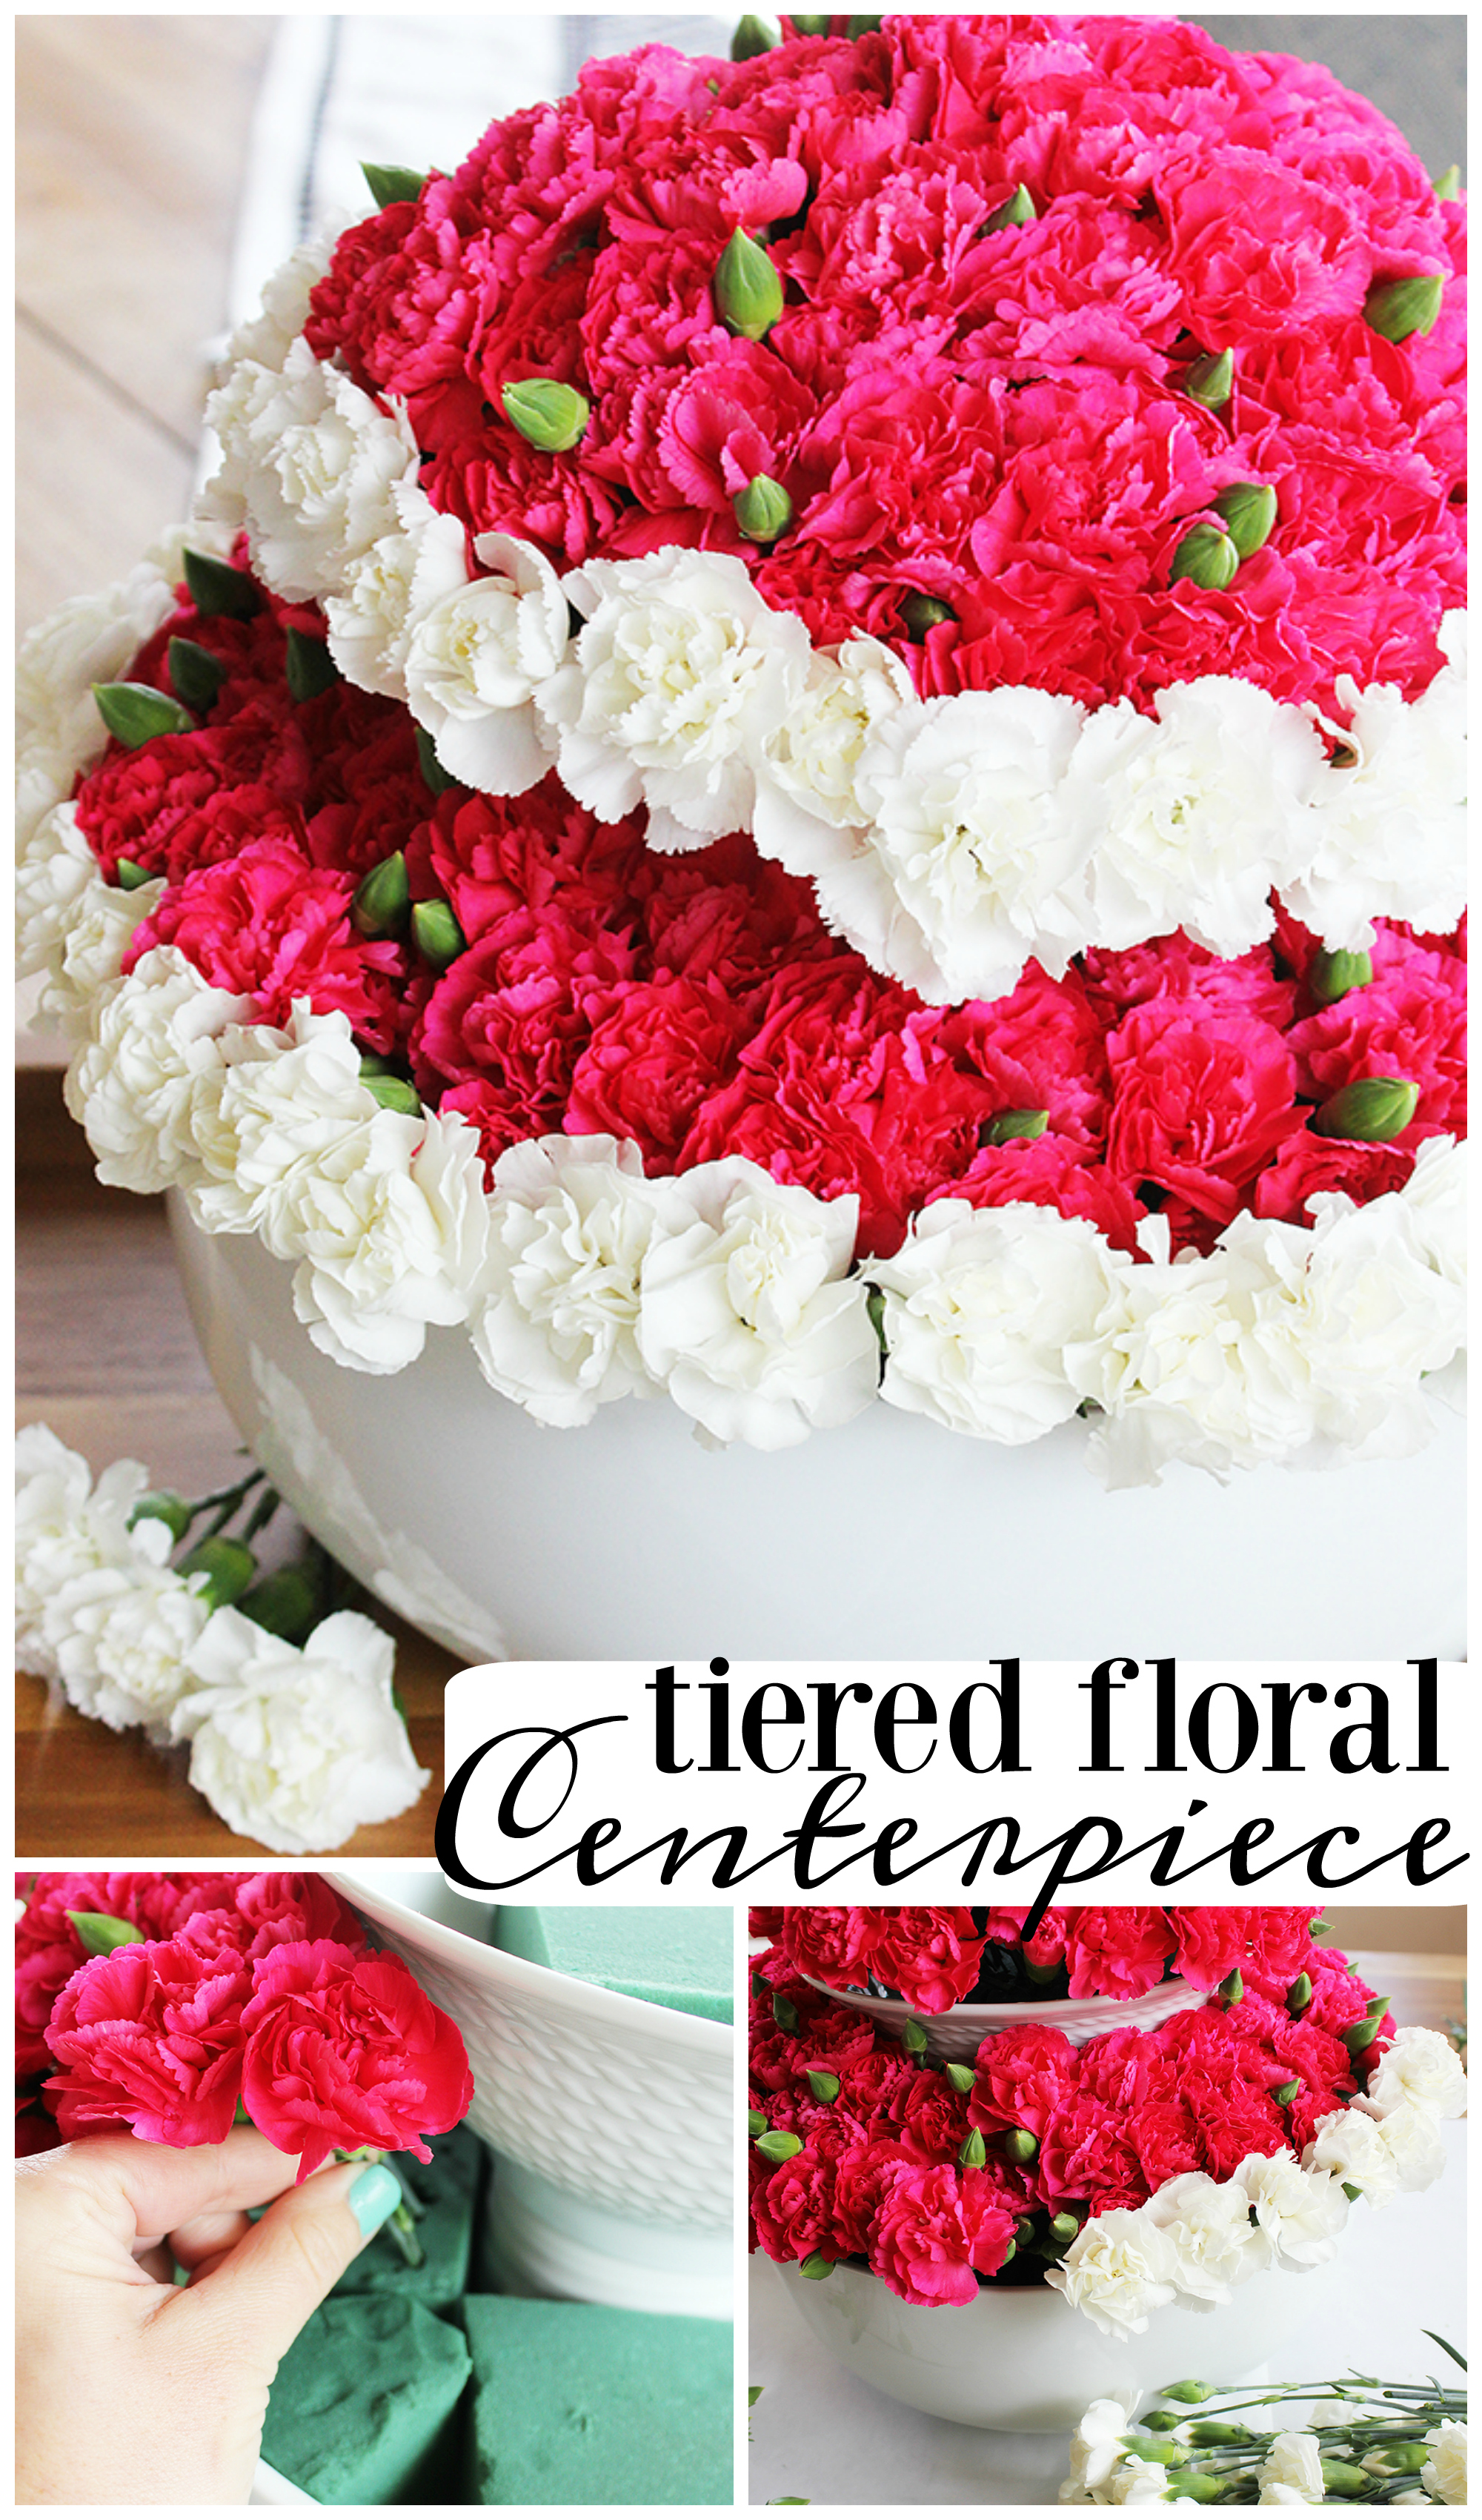 DIY Tiered Floral Centerpiece - This is so easy to make, and perfect for so many occasions! #bhglivebetter